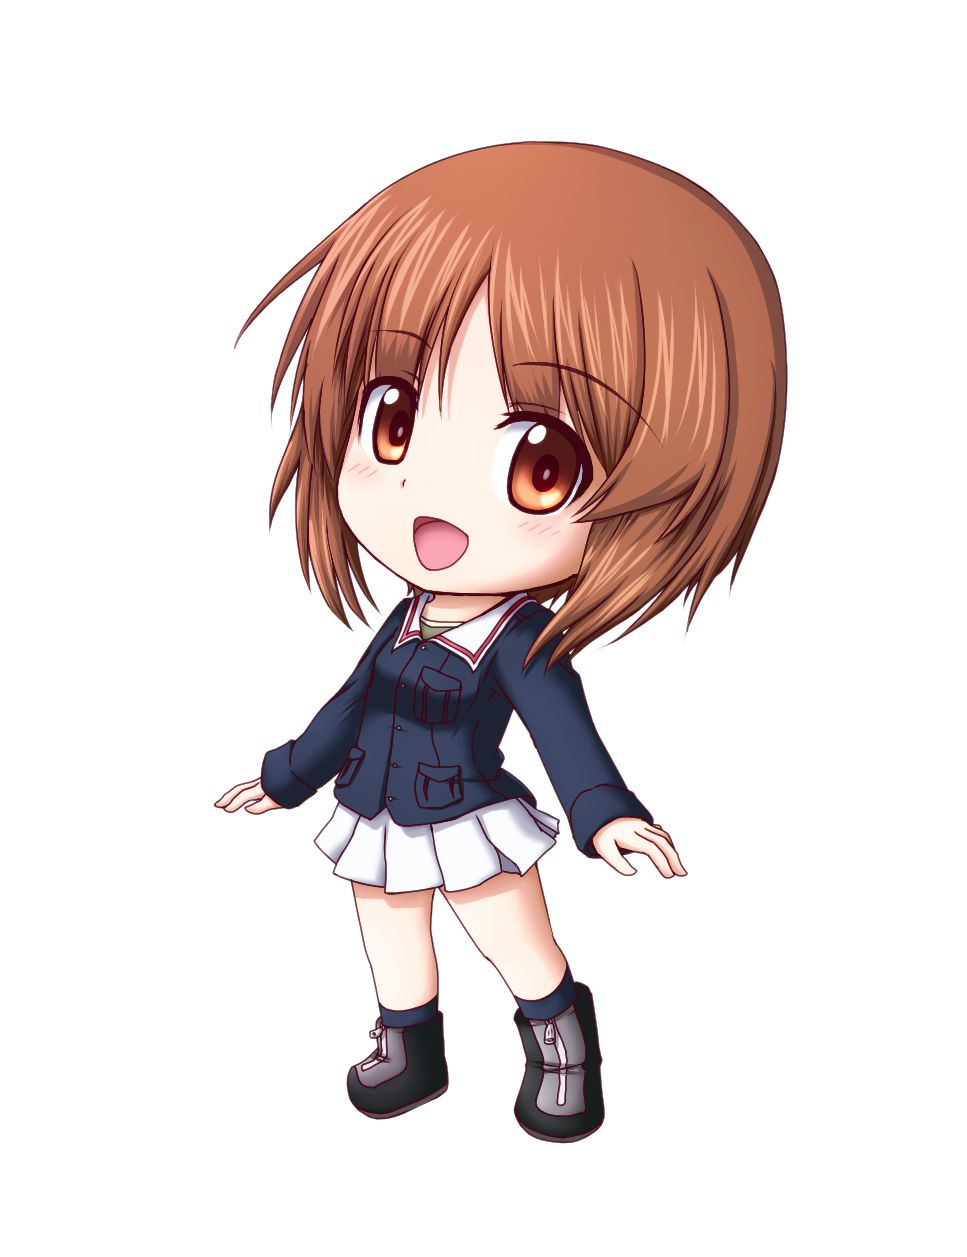 Anime clipart girl png freeuse download Pix For > Anime Chibi Girl With Brown Hair | Chibi girl | Chibi girl ... png freeuse download